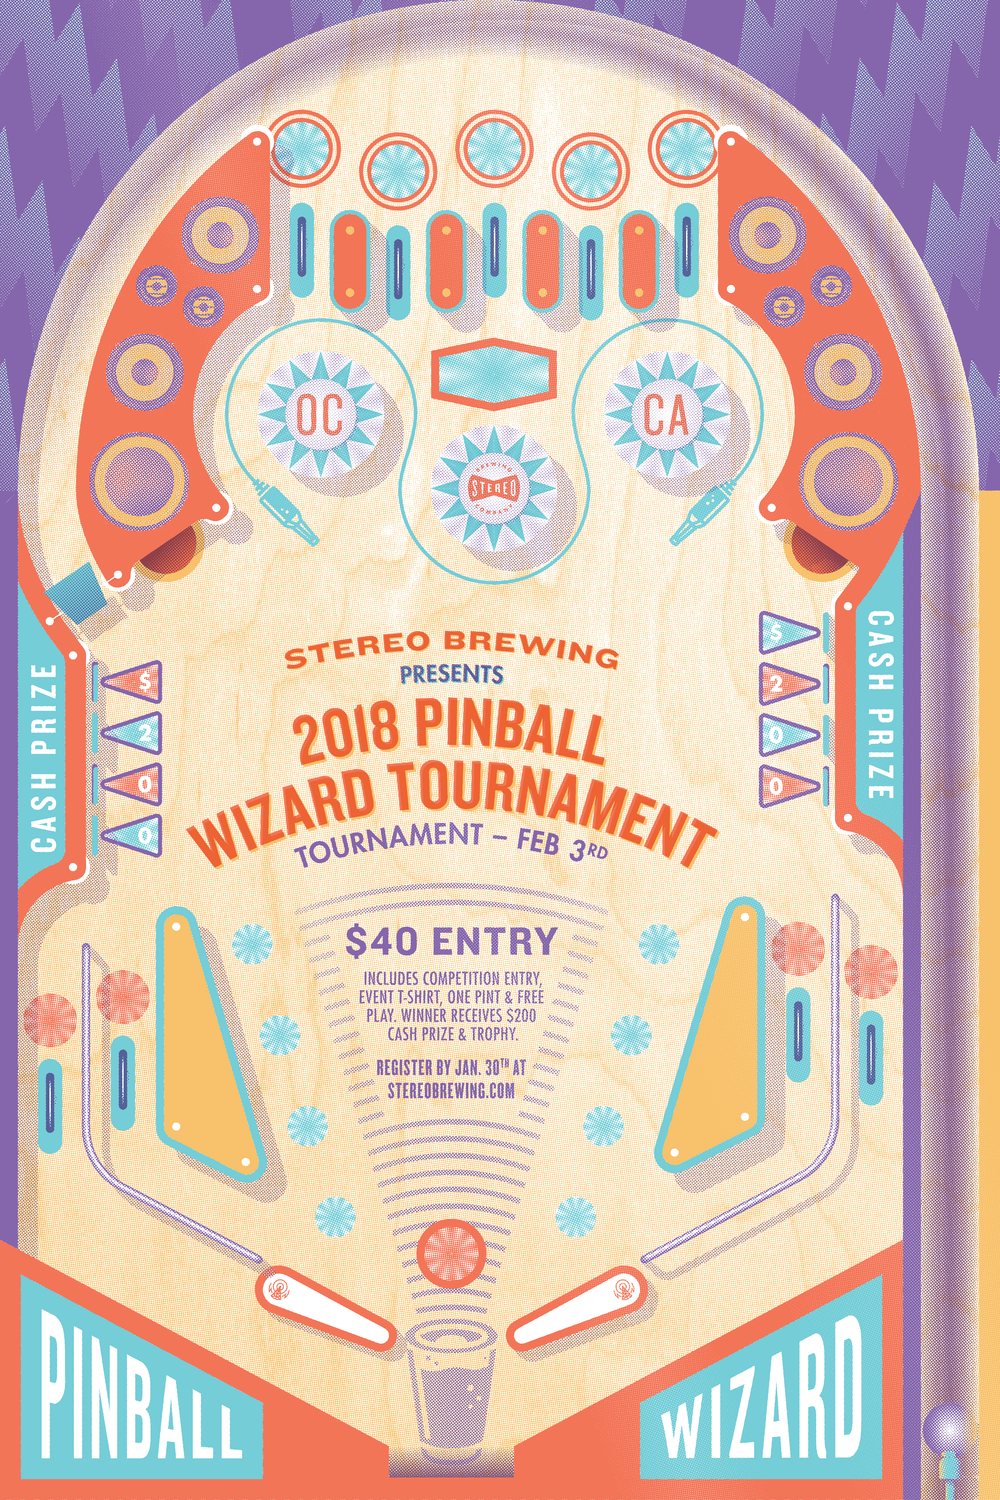 2018 Pinball Wizard Tournament - Stereo Brewing